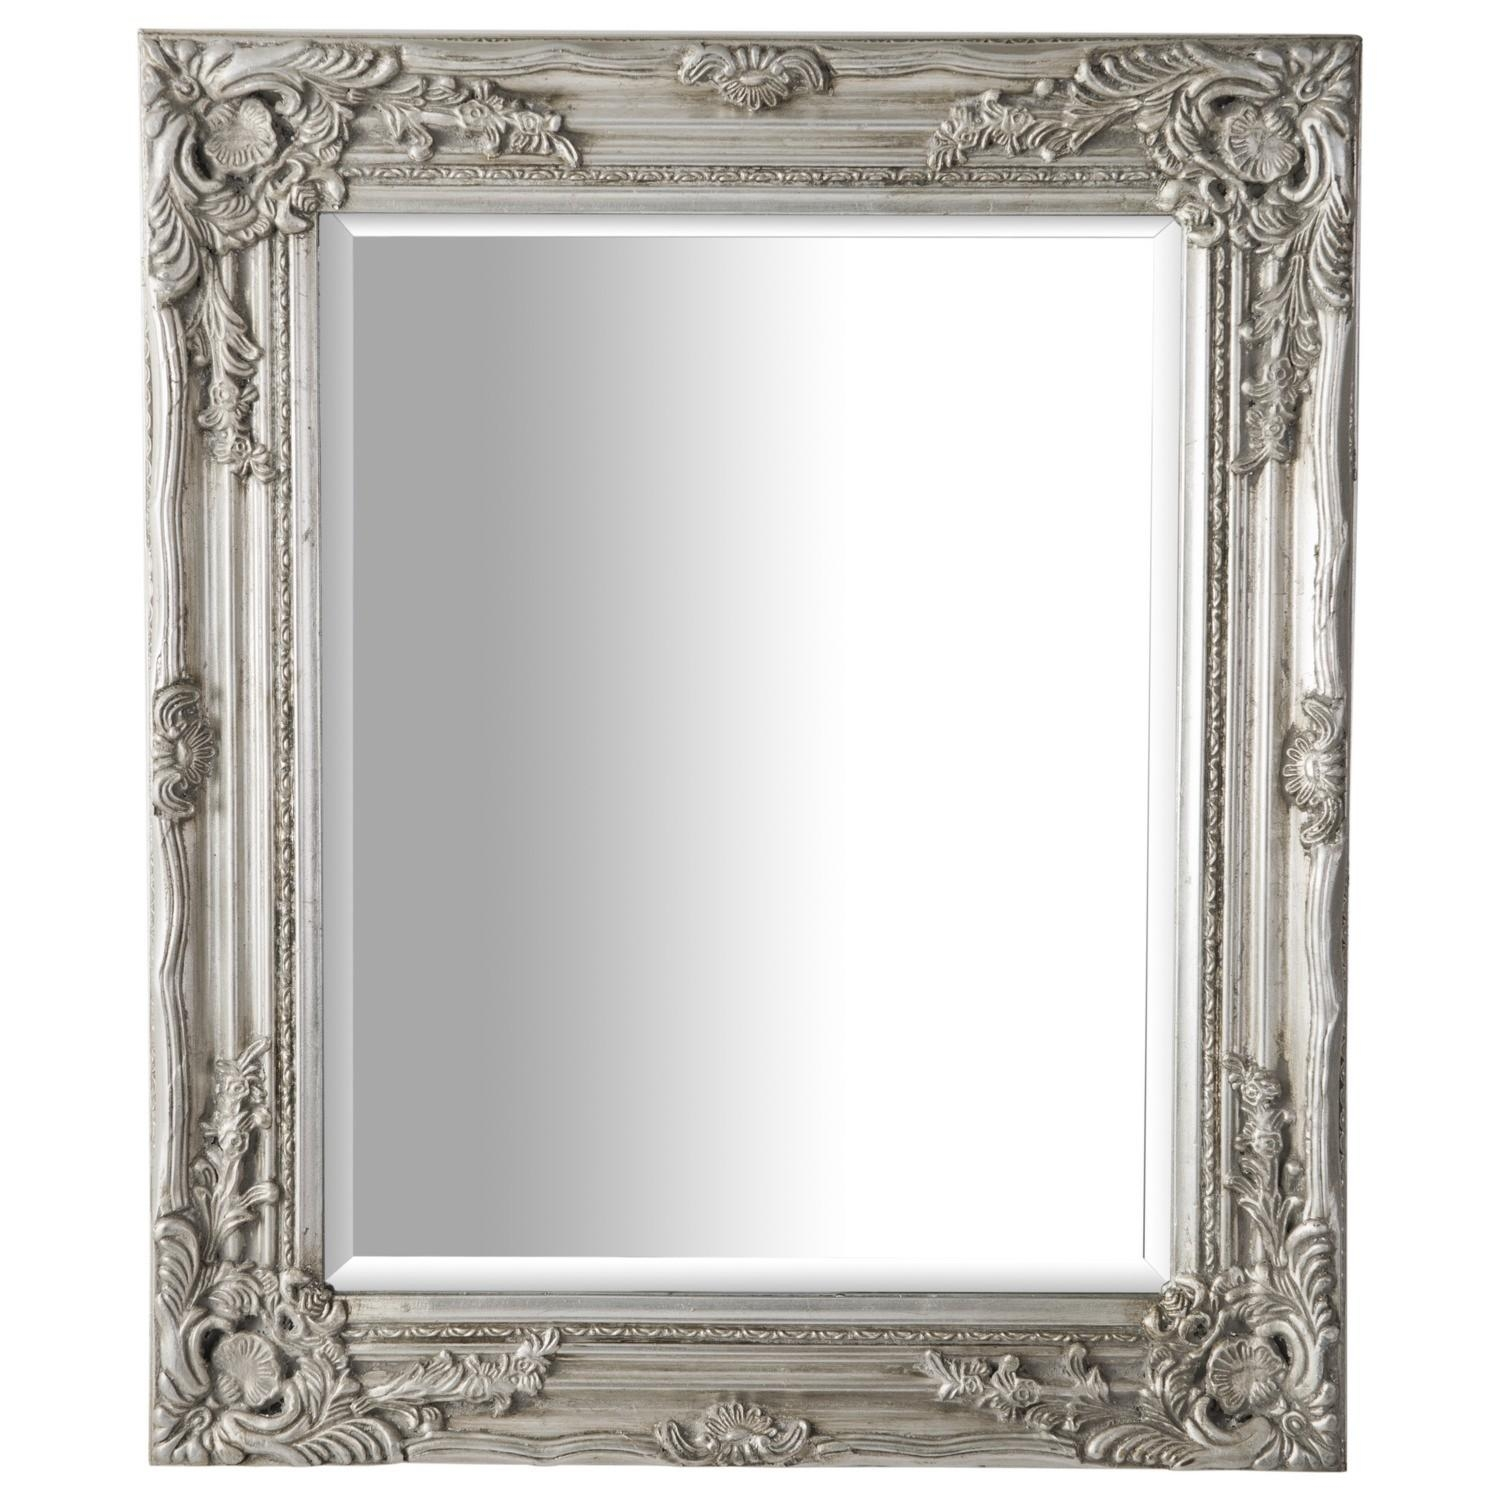 Antique Ornate Mirror Silver For Mirrors Ornate (Image 4 of 20)